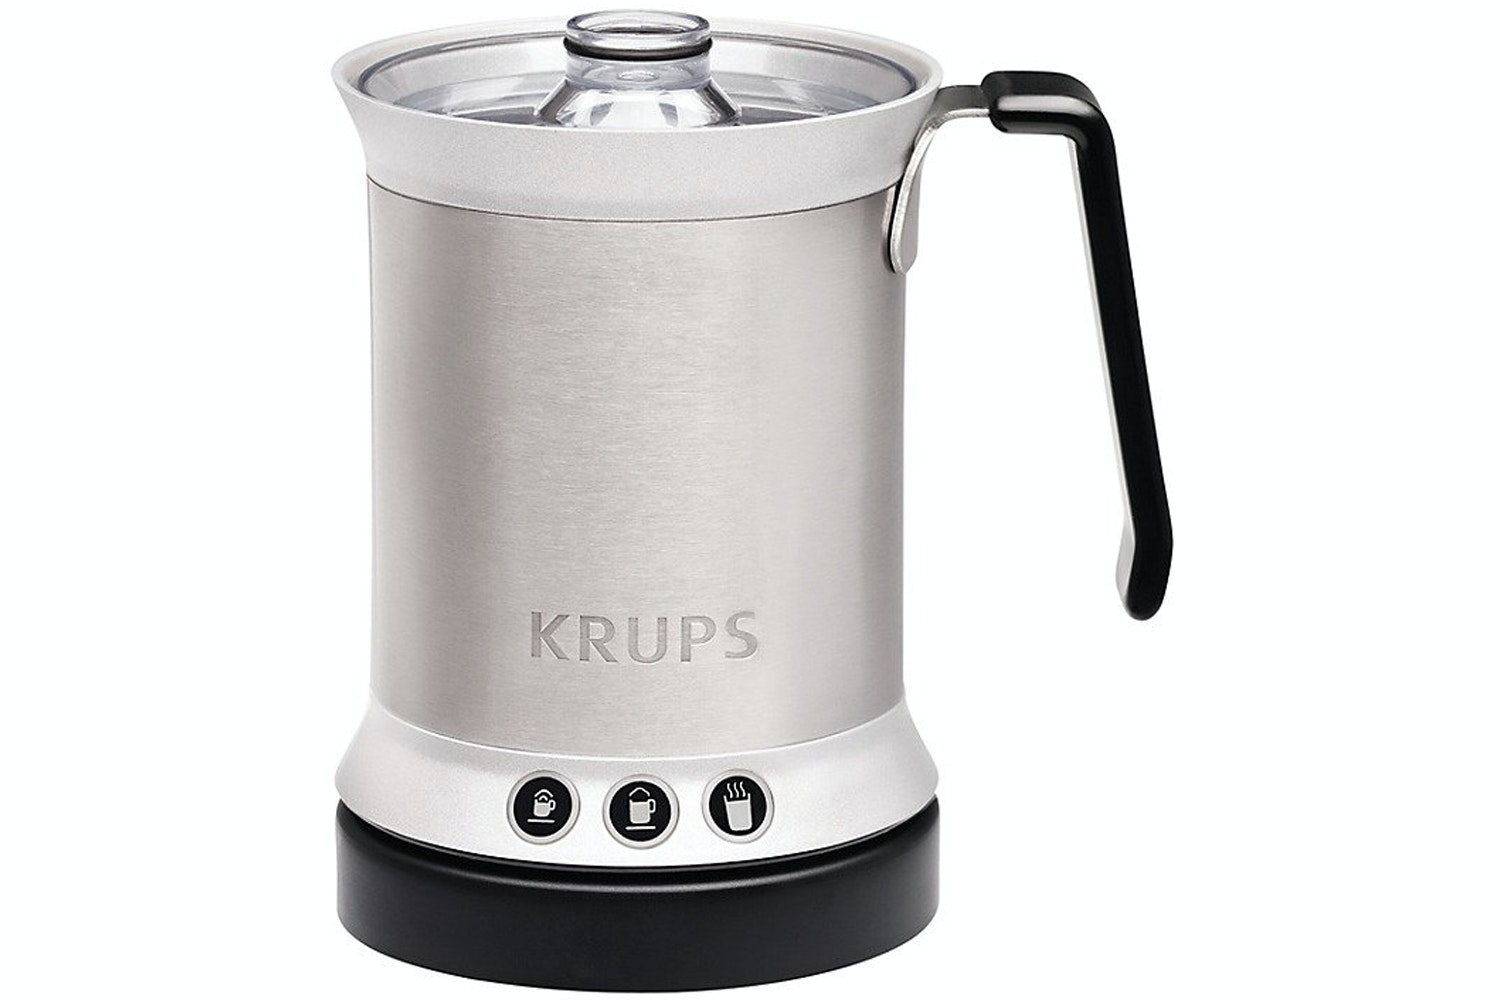 Krups Aeroccino Milk Frother | XL200044